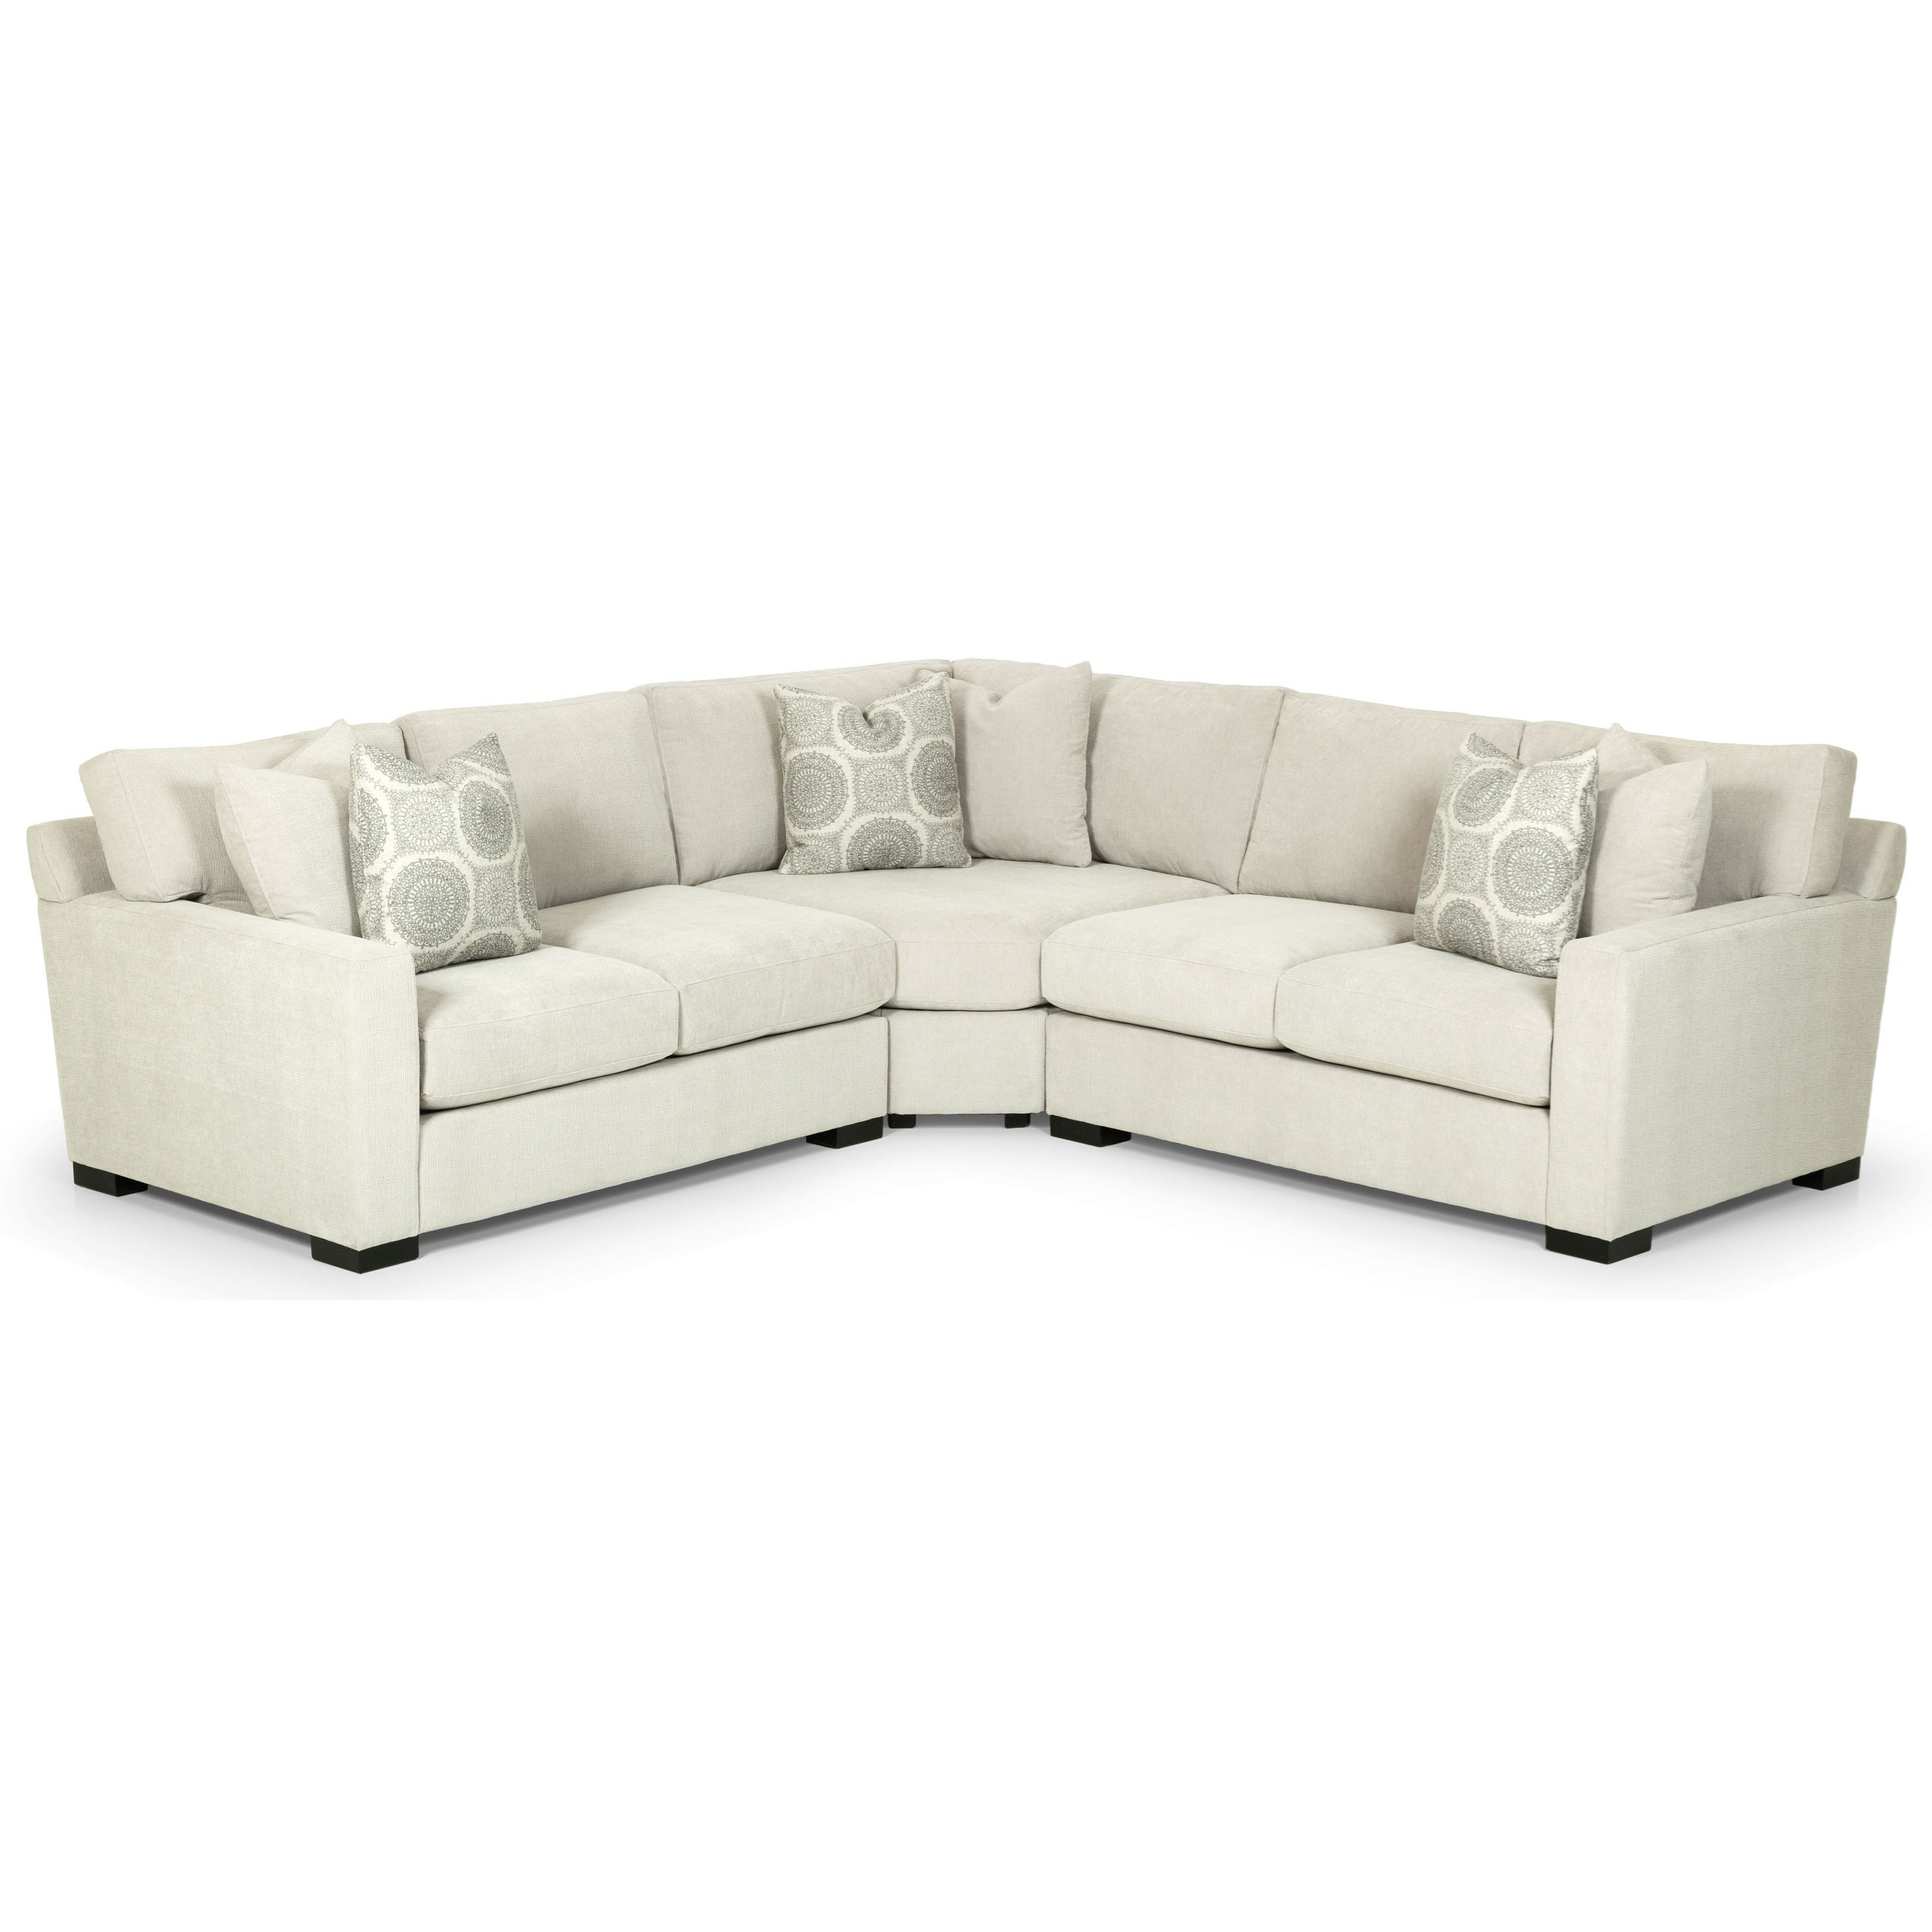 383 3 Pc Sectional Sofa by Stanton at Wilson's Furniture